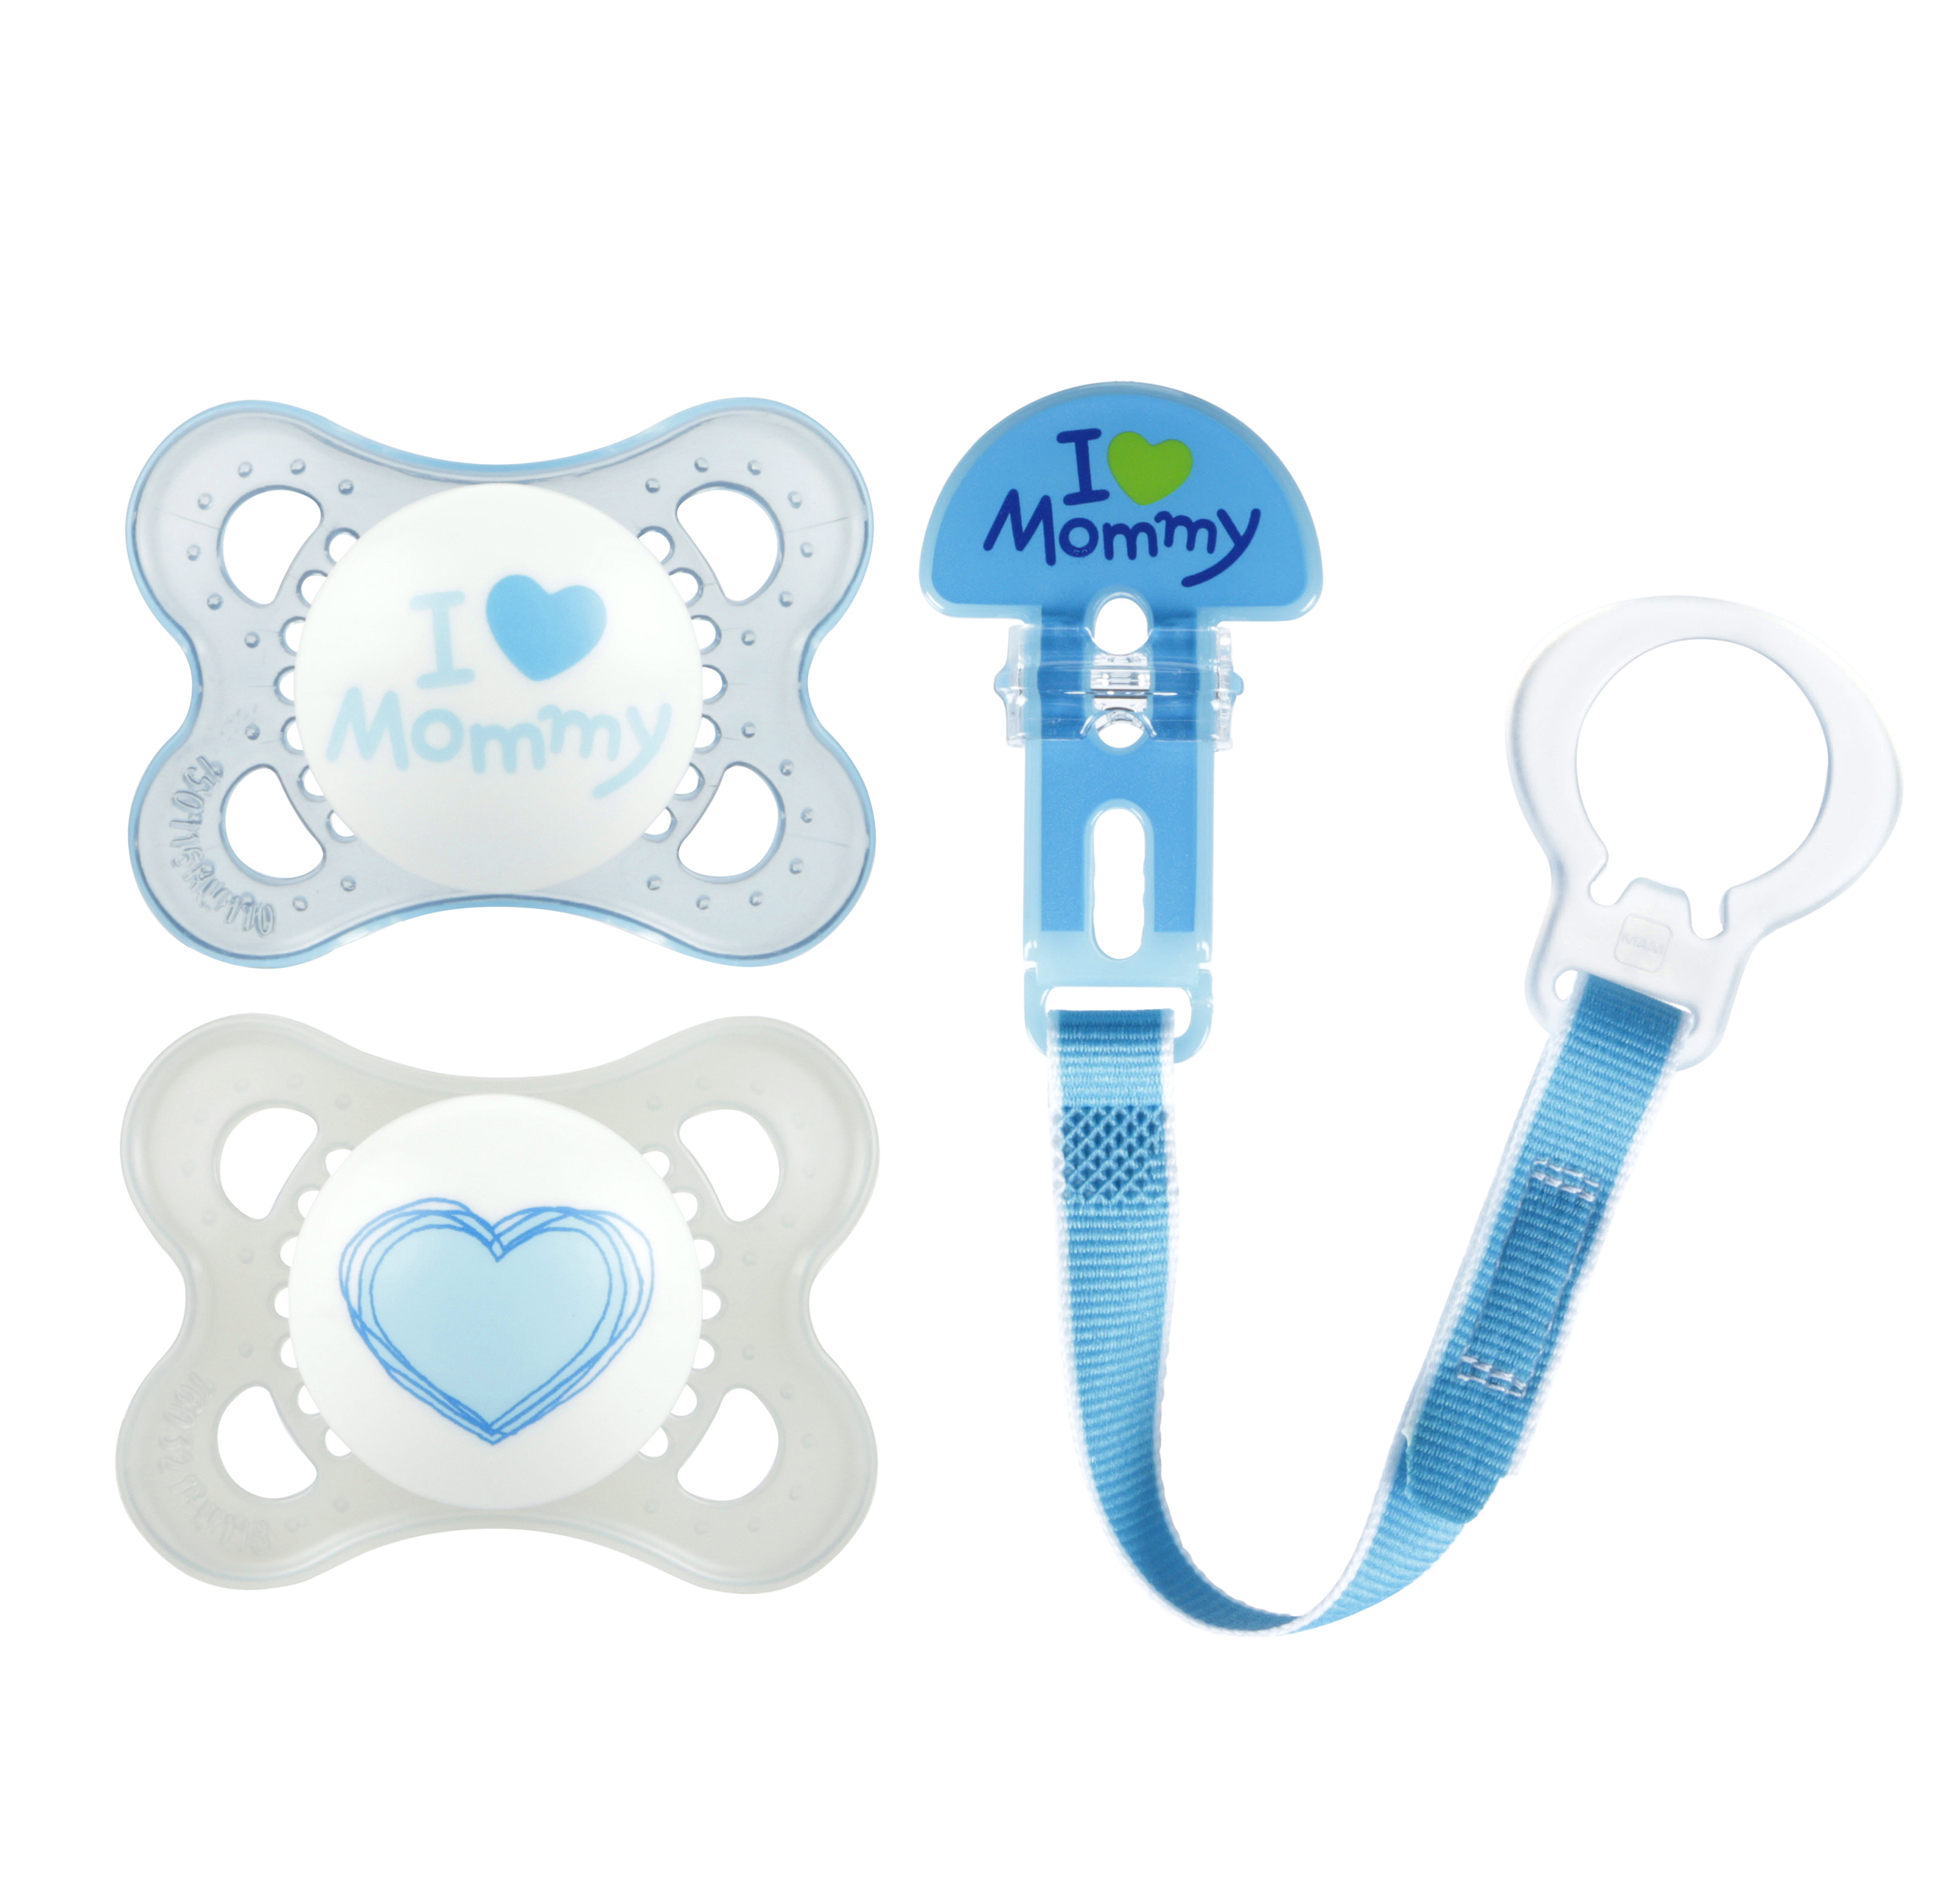 MAM Love & Affection Mommy Orthodontic Pacifier and Pacifier Clip, 0-6 Months, 2 pacifiers, 1 pacifier clip, Boy